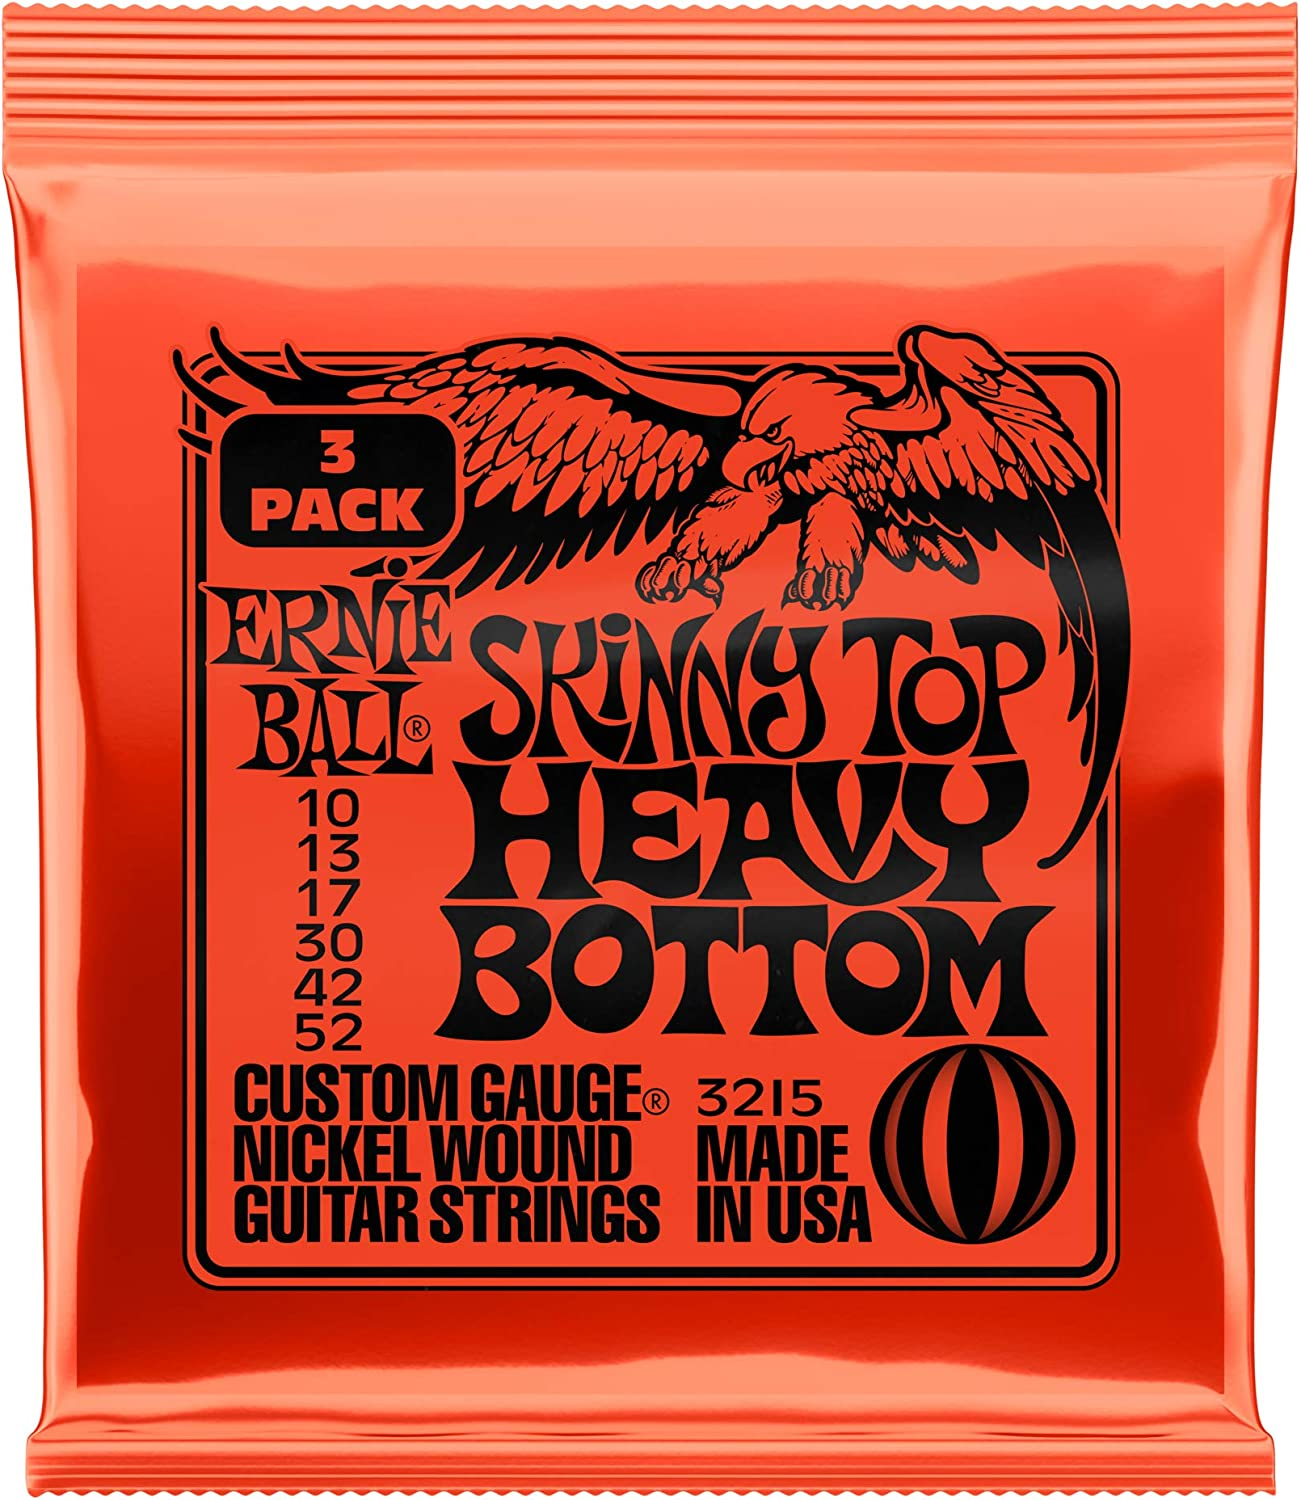 Ernie Ball Skinny Top Heavy Bottom Slinky Nickel Wound Cuerdas para guitarra eléctrica 3 Pack - 10-52 Gauge